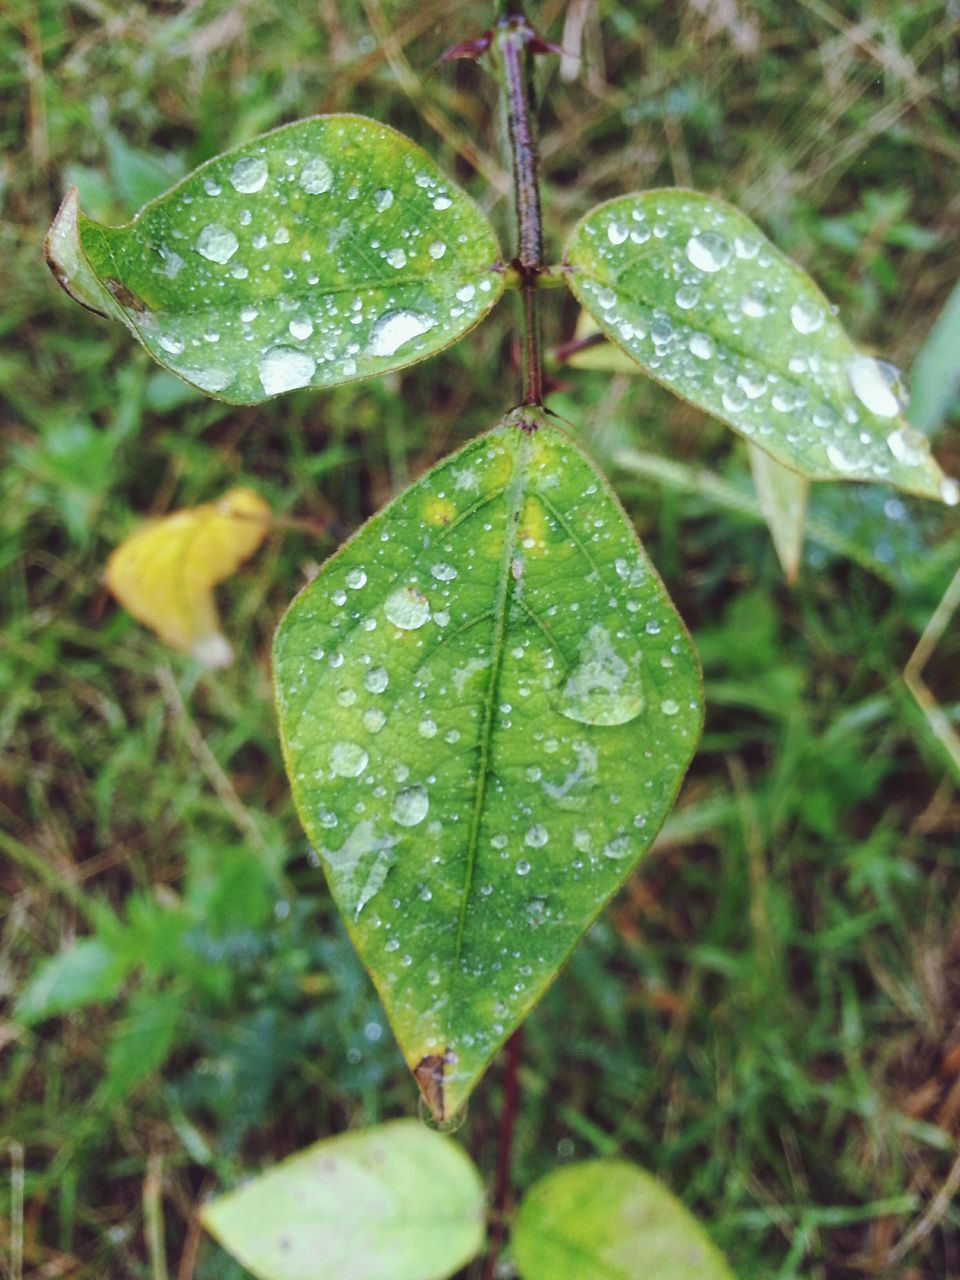 drop, leaf, green color, water, wet, growth, close-up, nature, day, raindrop, no people, focus on foreground, outdoors, plant, freshness, beauty in nature, fragility